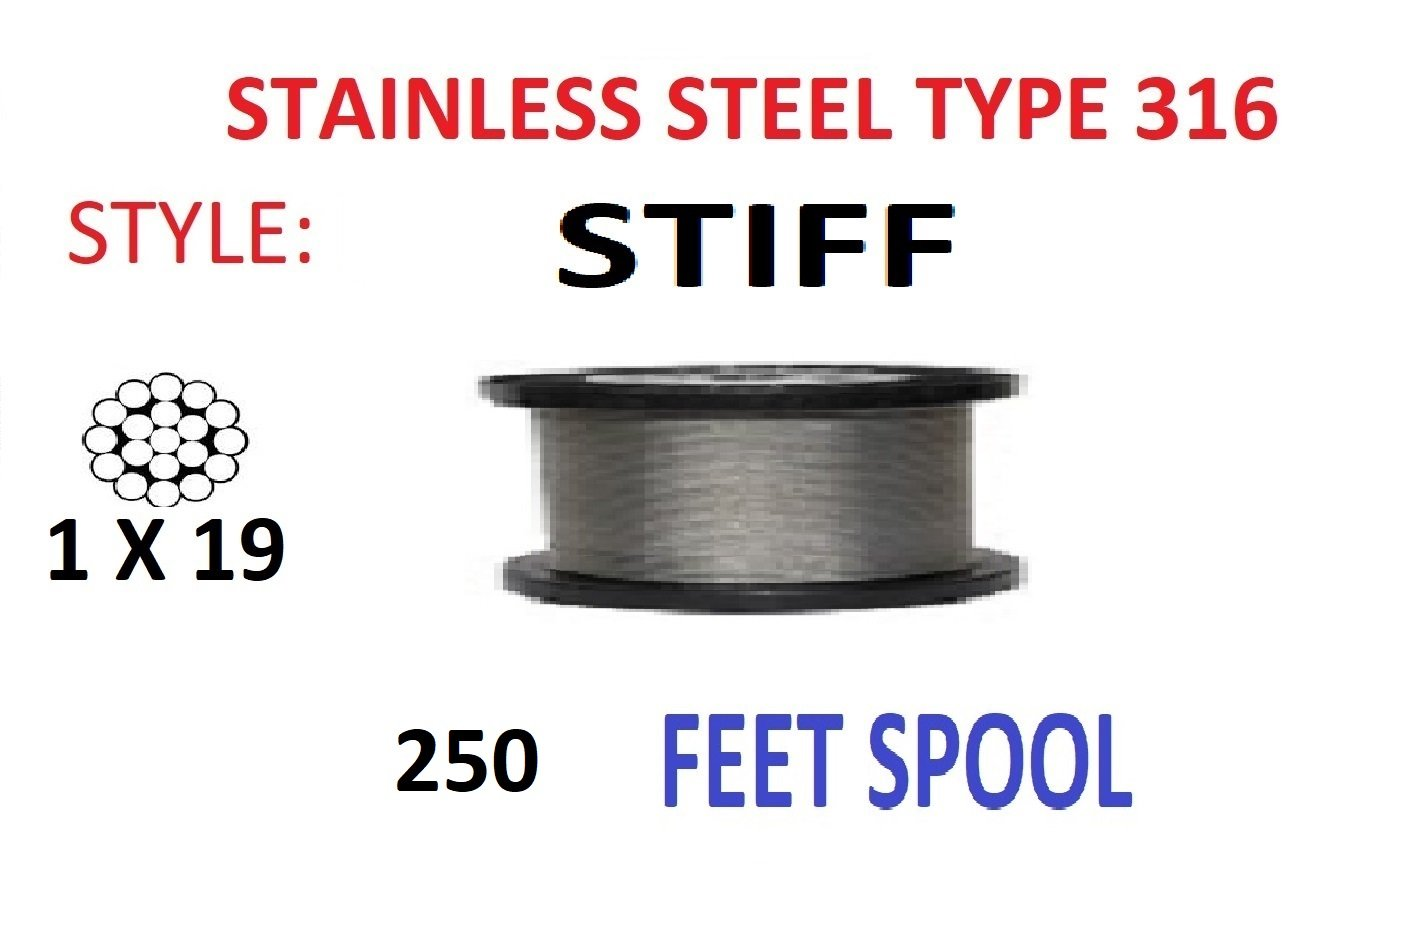 ArkHardware 250 Feet 1/8'' 1x19 Stainless Steel Type 316 Stiff Wire Rope Cable Railing Rigging Commercial Marine Grade